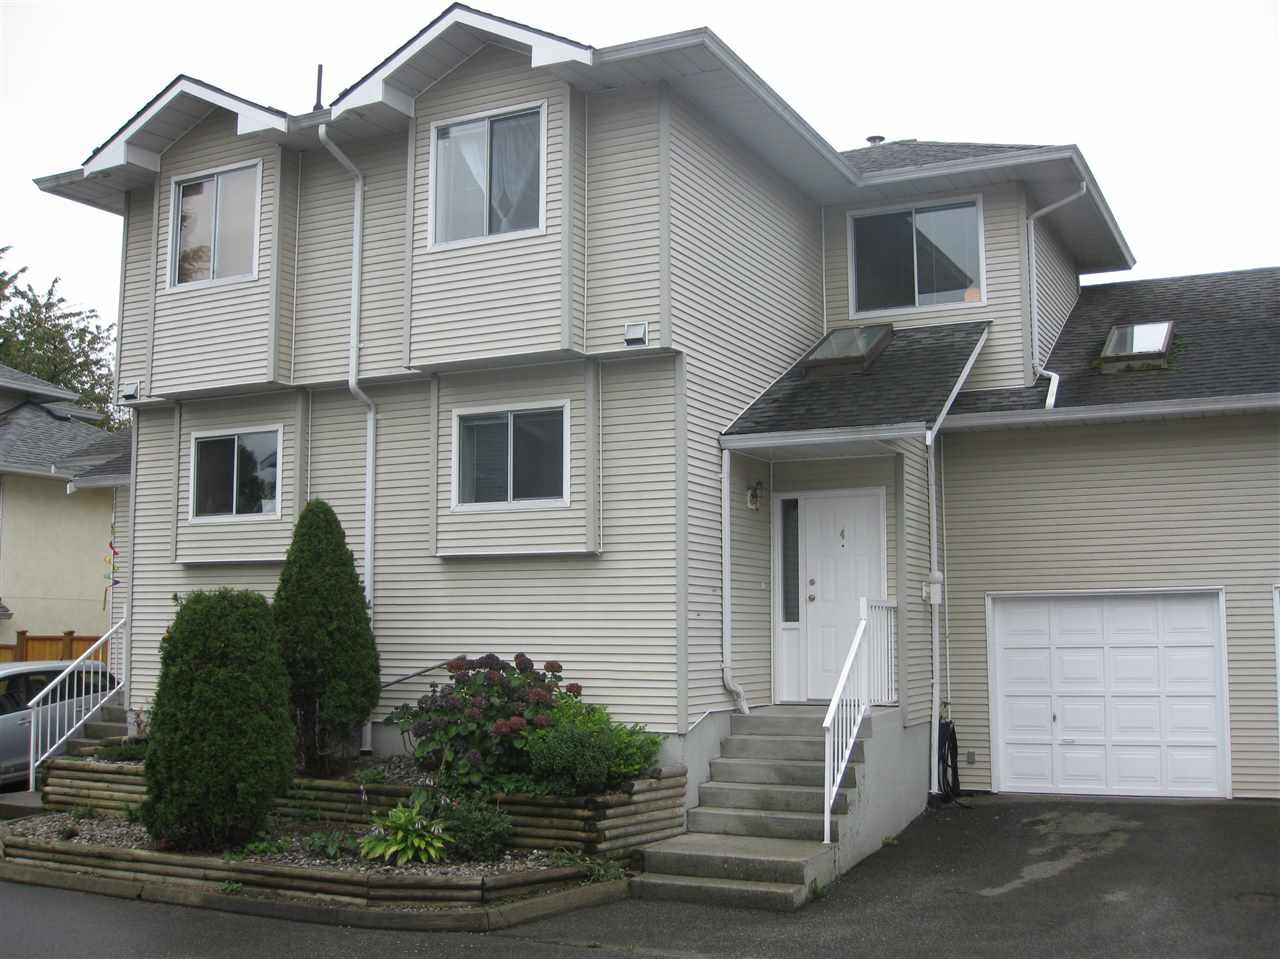 Main Photo: 4 19240 119 AVENUE in Pitt Meadows: Central Meadows Townhouse for sale : MLS®# R2064360